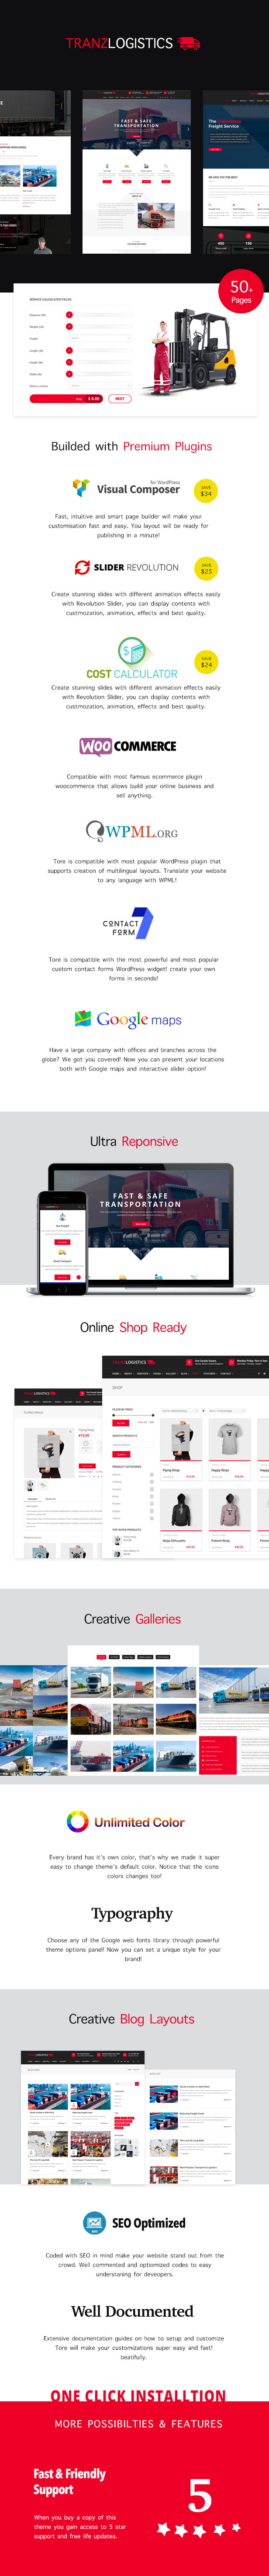 Tranzlogistics - Logistics, Cargo, Shipping and Transport WordPress Theme - 1